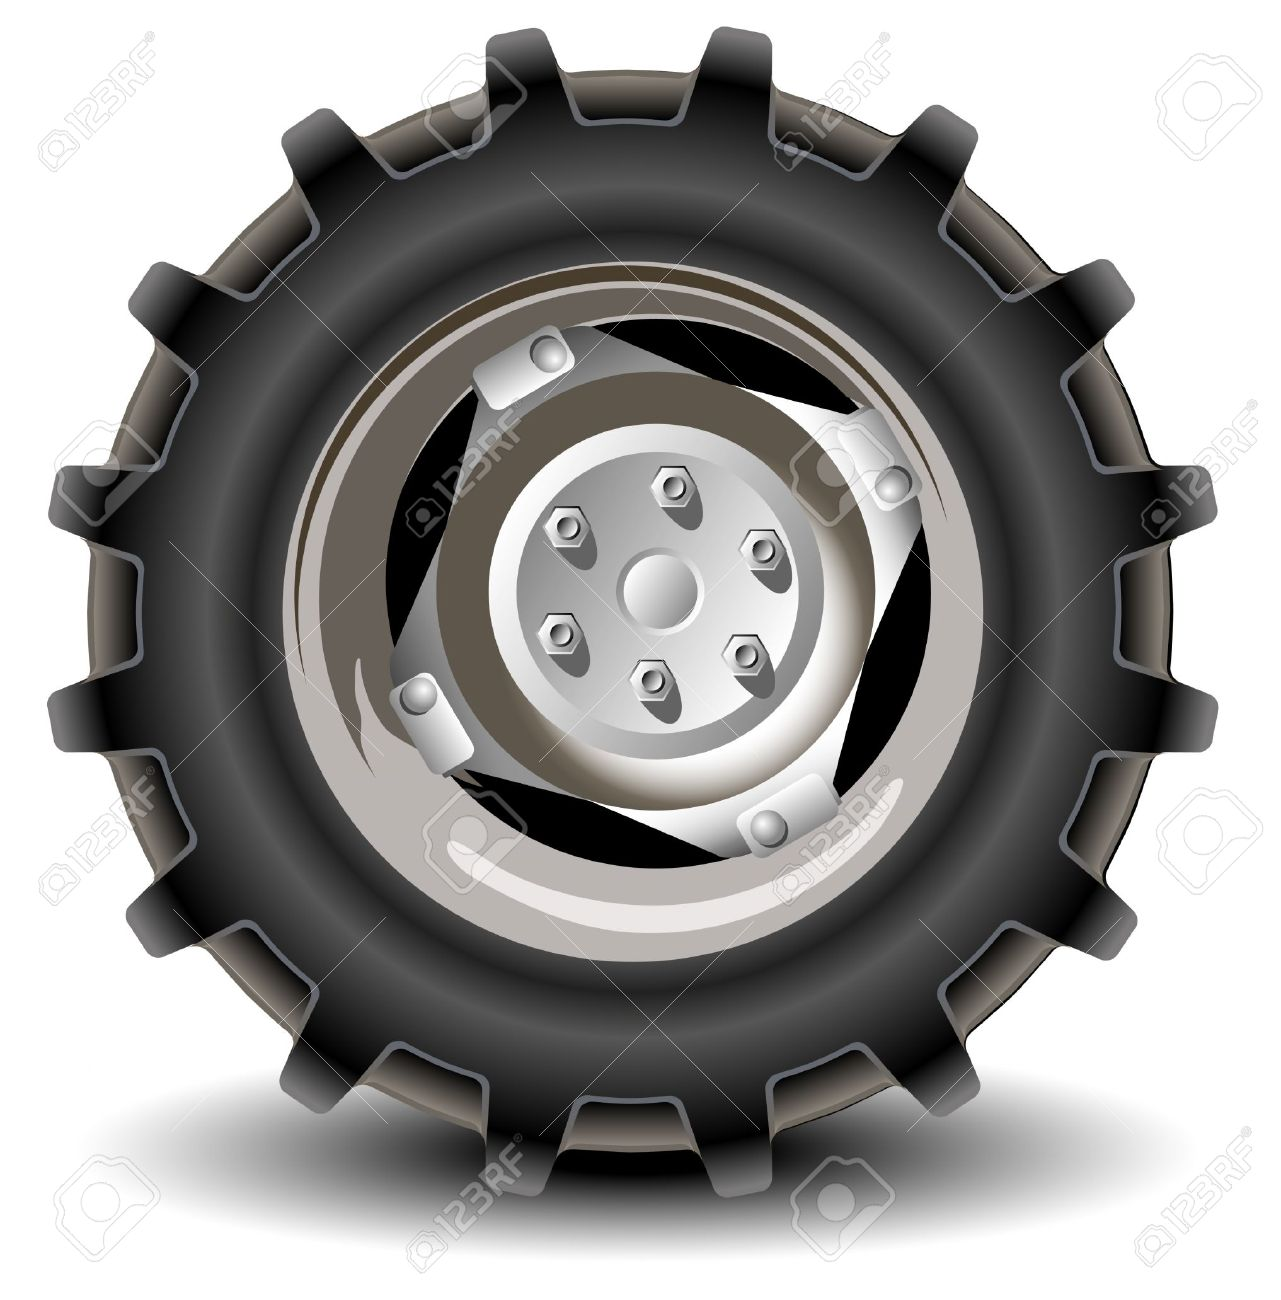 Car Wheel In Details On White Background With Shadow, Vector.